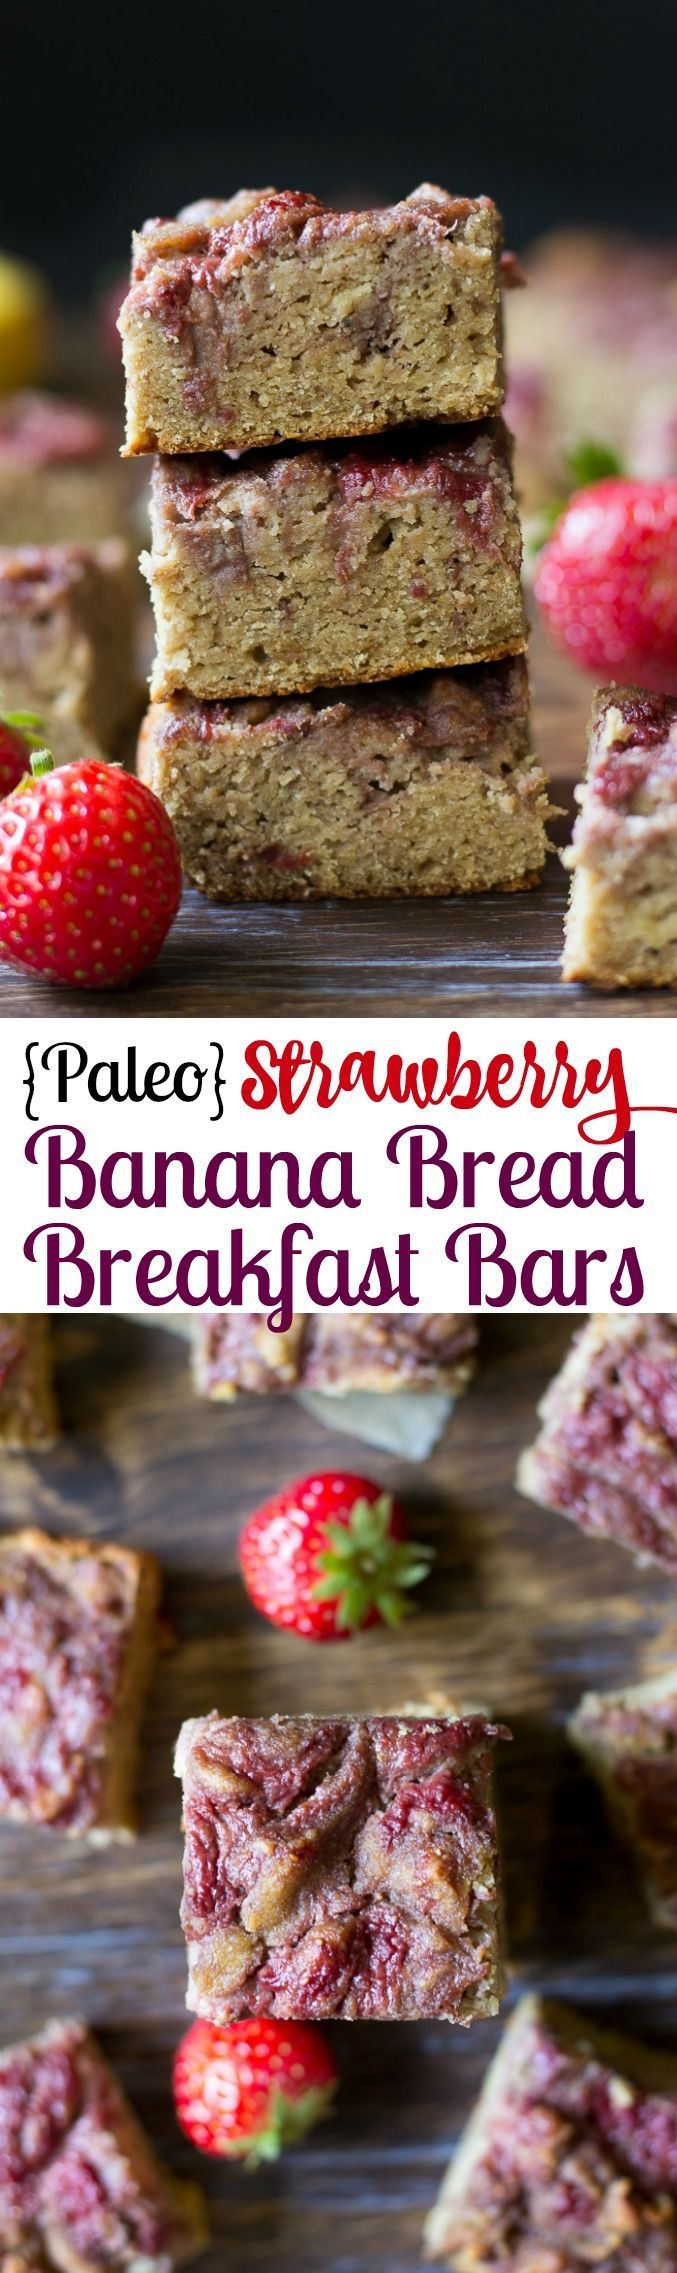 Paleo Strawberry Banana Bread Breakfast Bars that are grain free, Paleo, seriously delicious and very kid friendly! #Stopandshop #ad #betterforyou